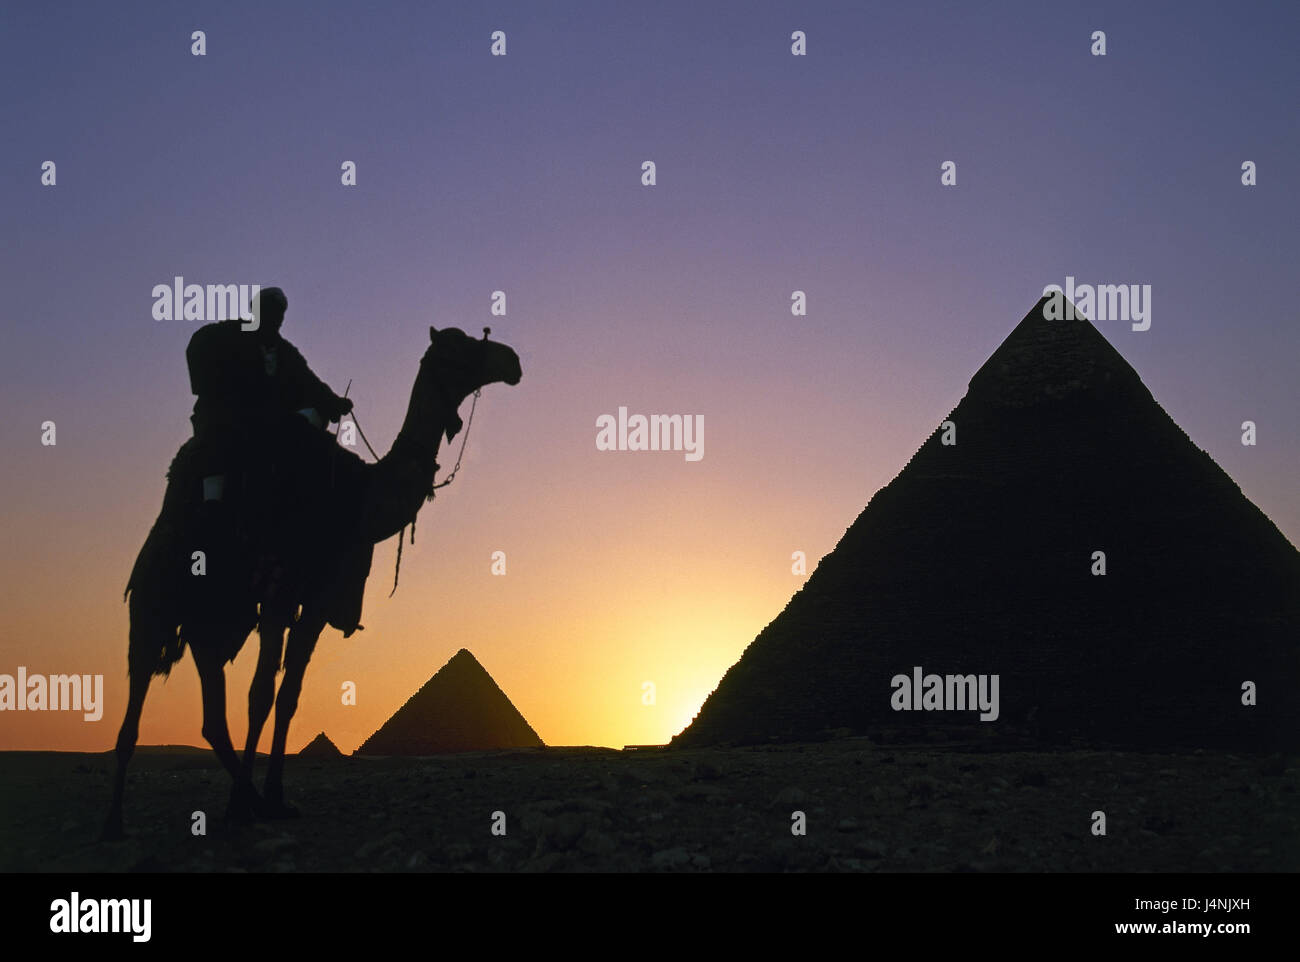 Egypt, Gizeh, pyramids, camel bleeds, silhouette, sundown, Africa, structures, historically, world-famous, famously, - Stock Image